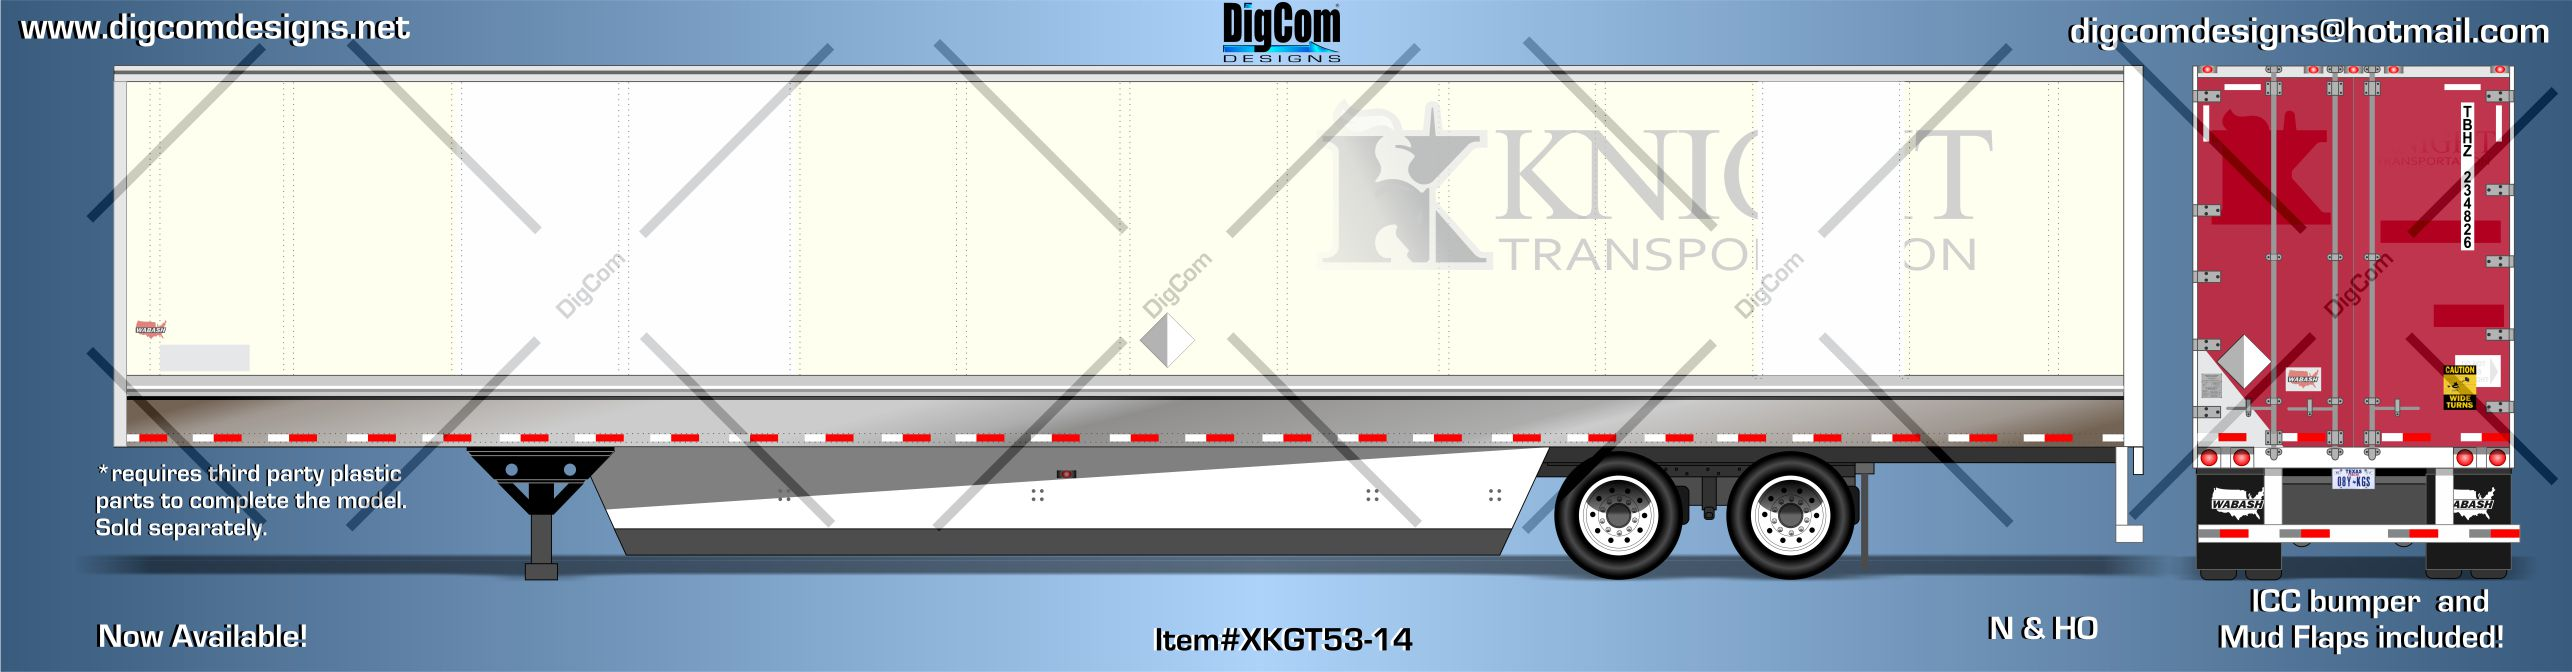 EX KNIGHT TRAILER DESIGN.jpg